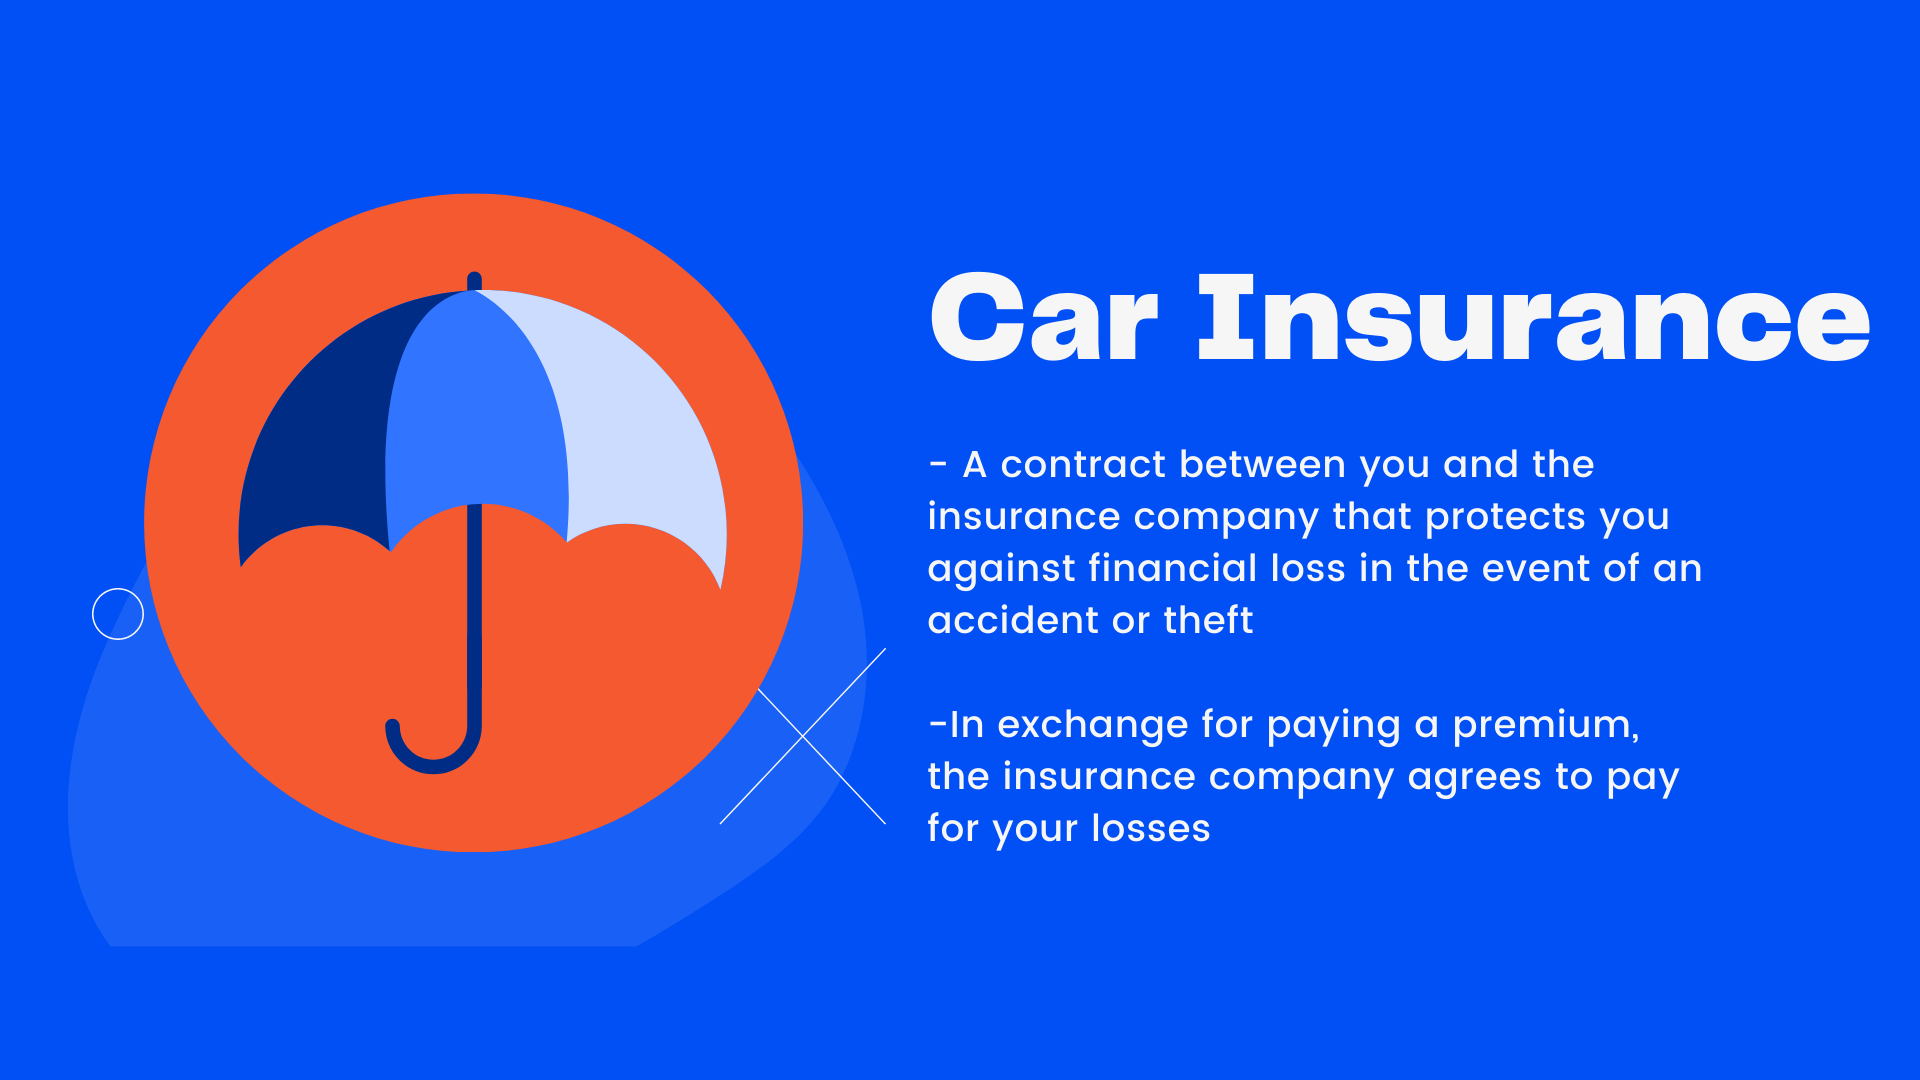 A contract between you and the insurance company that protects you against financial loss in the event of an accident or theft. In exchange for paying a premium, the insurance company agrees to pay for your losses.